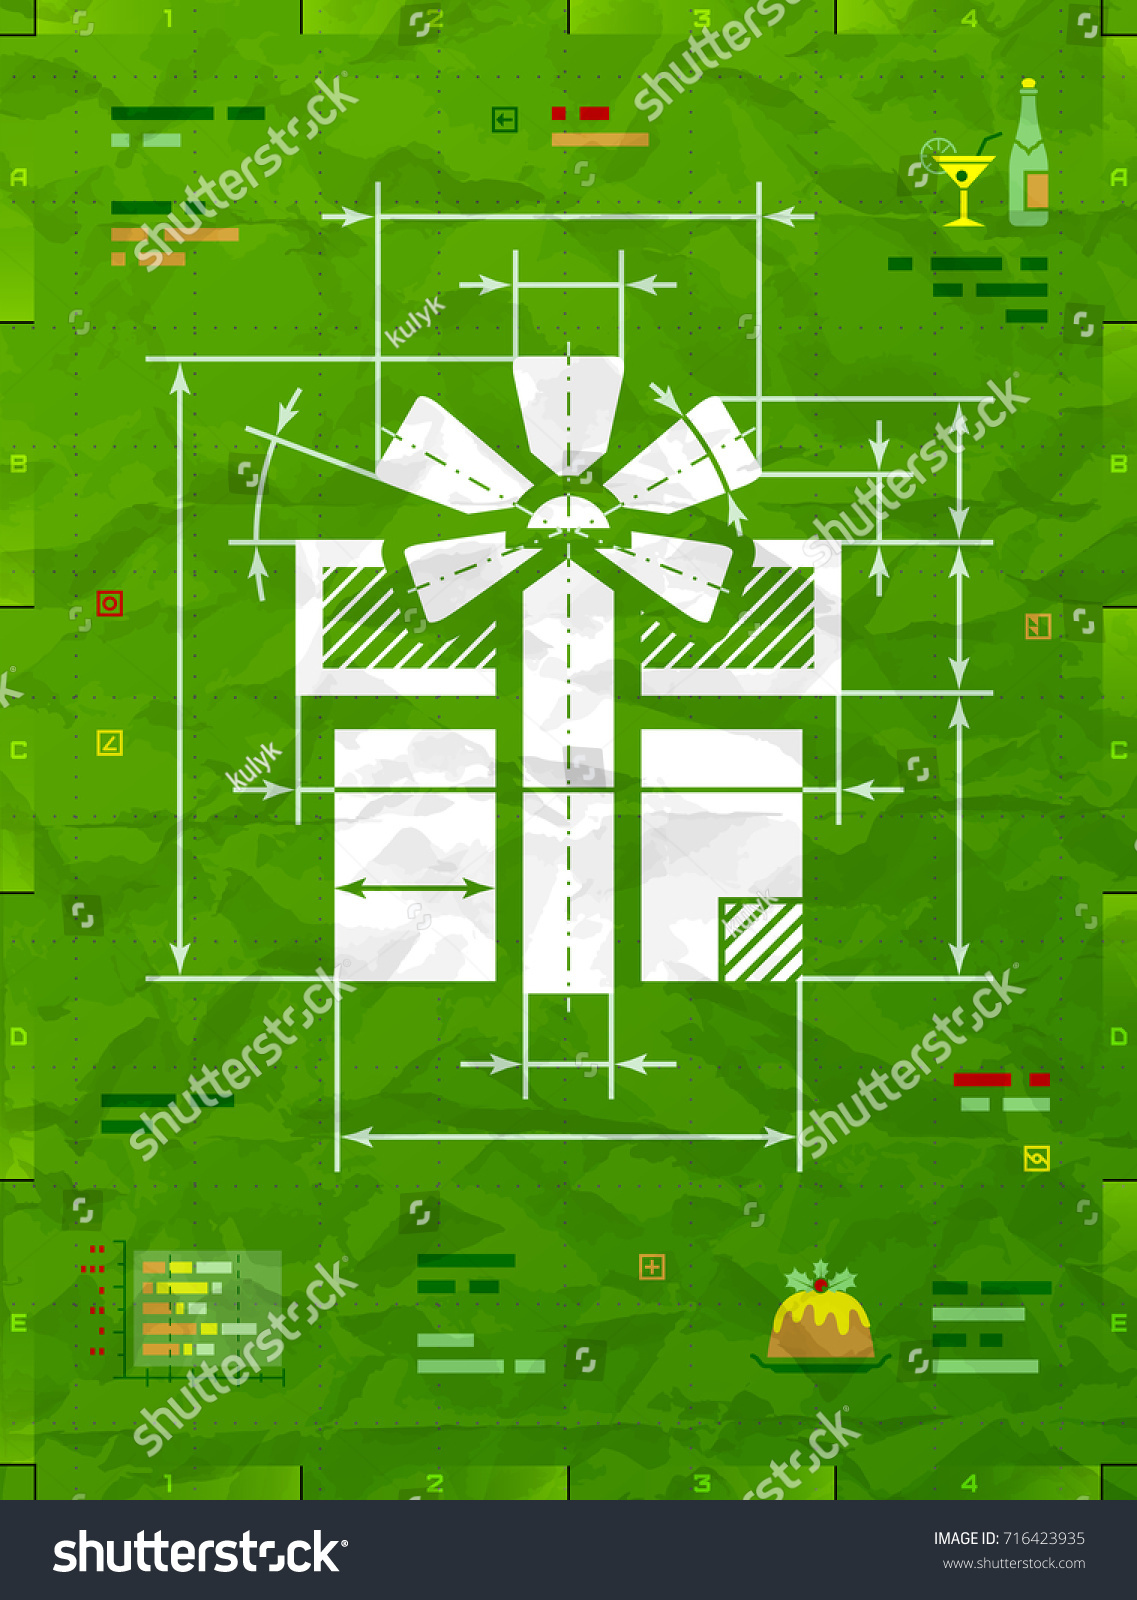 Gift symbol technical blueprint drawing drafting vectores en stock gift symbol as technical blueprint drawing drafting of gift box on crumpled paper best malvernweather Image collections